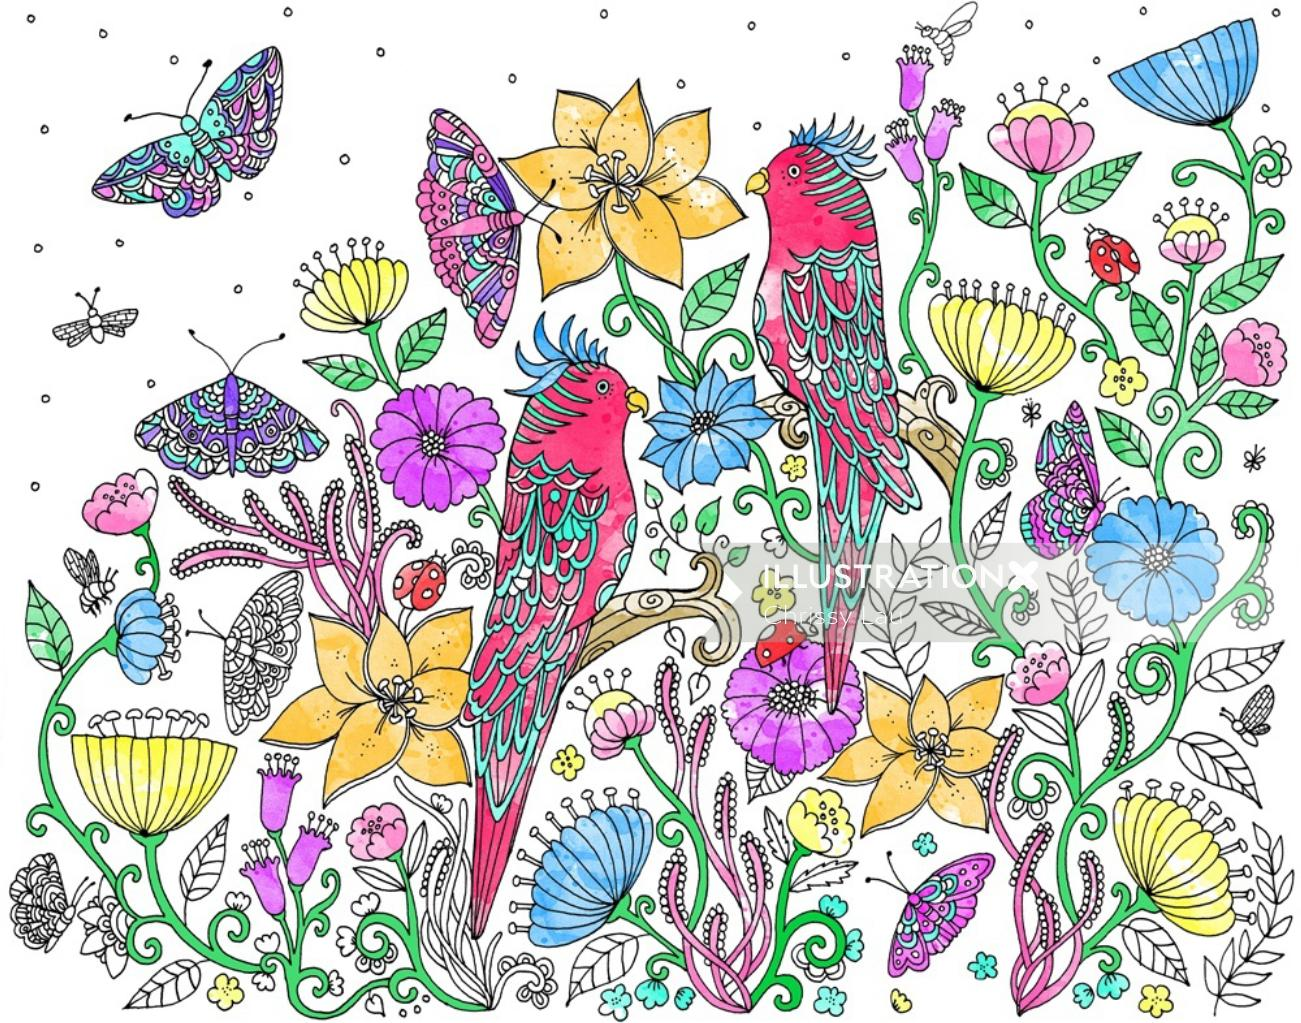 Decorative art of birds and flowers